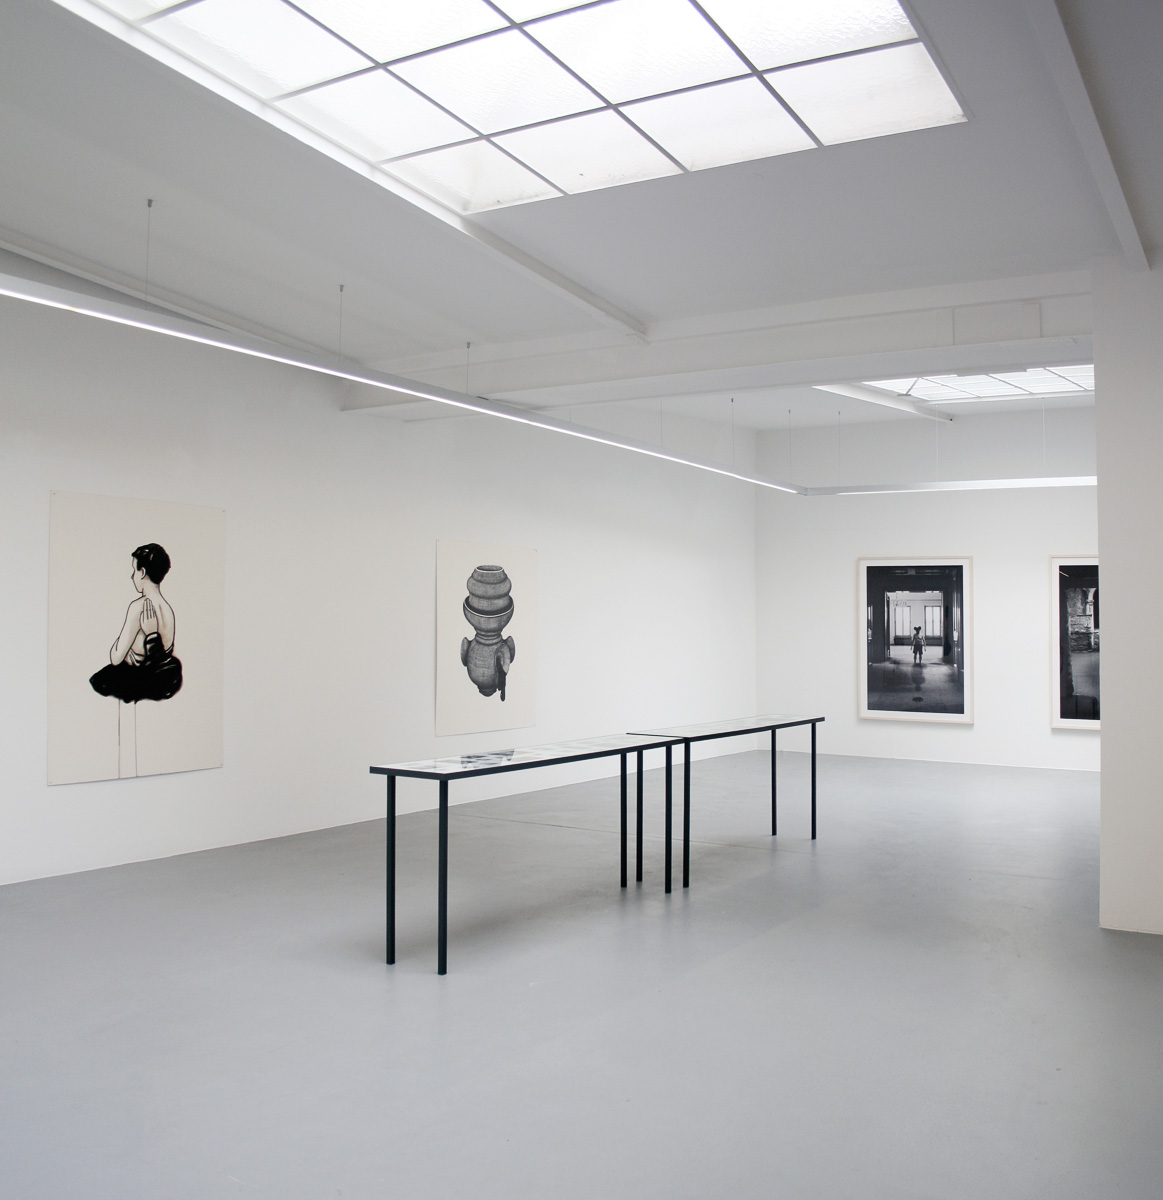 20130309-installation view_1.jpg